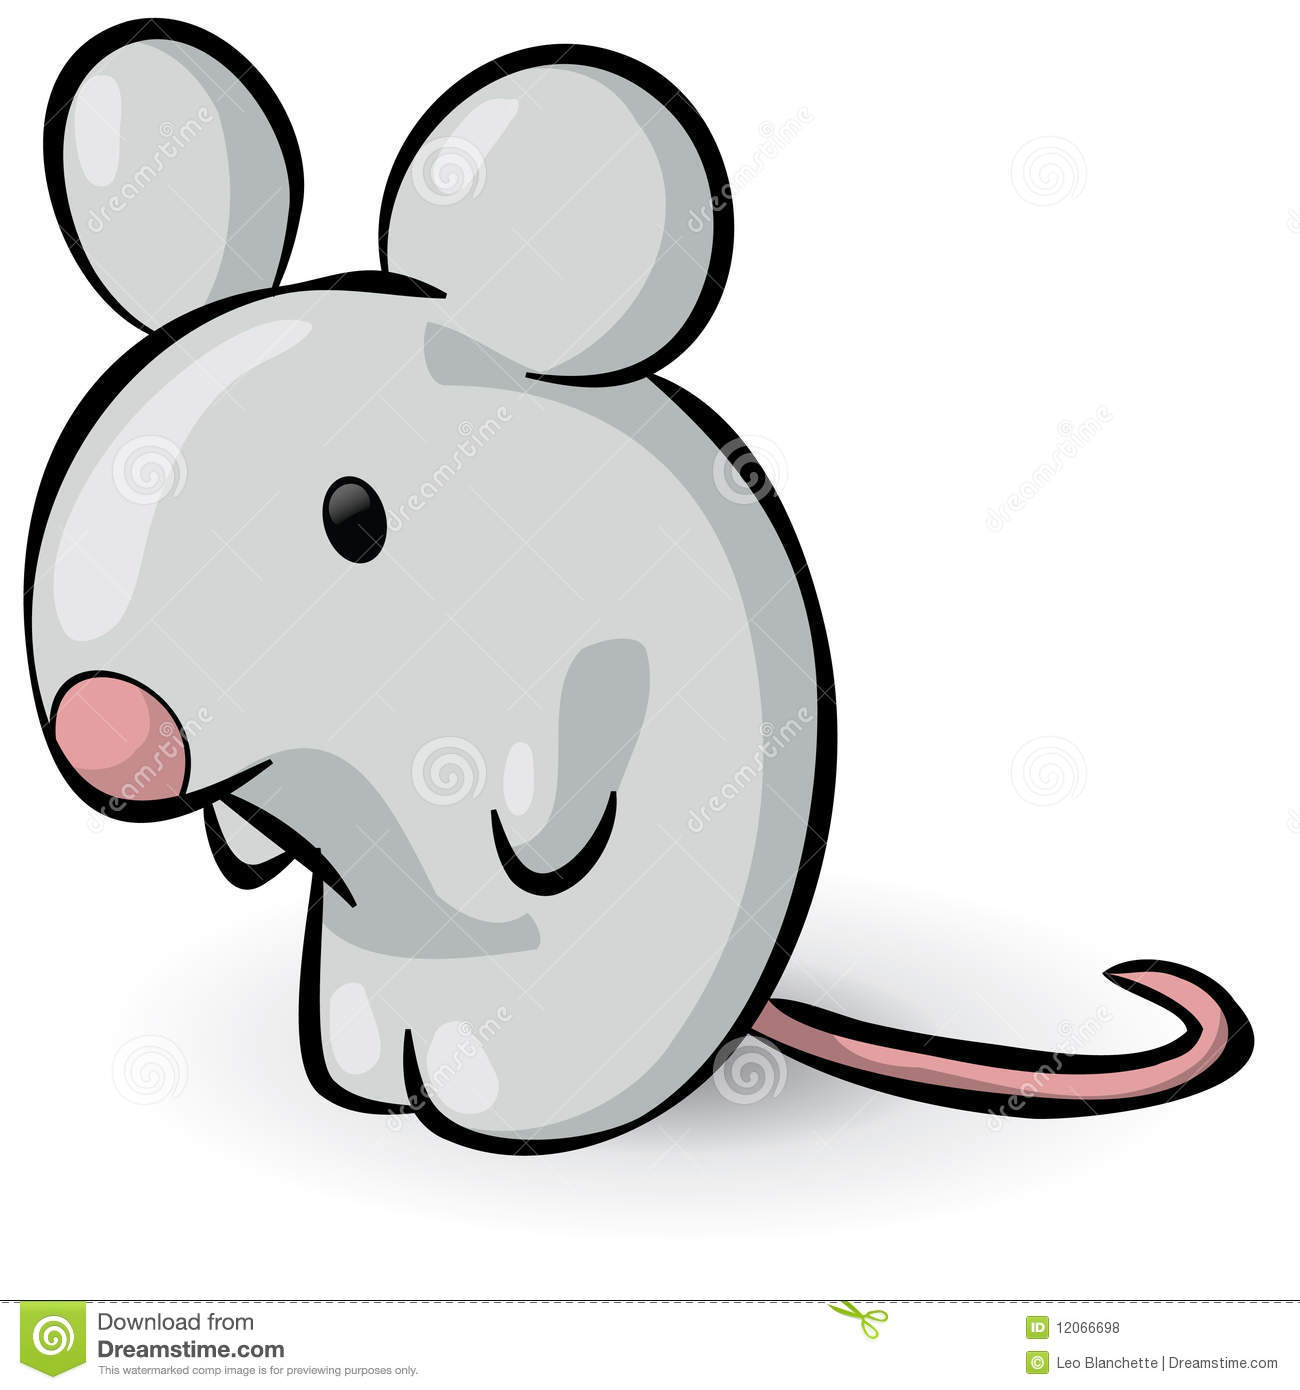 Pictures Of Cartoon Mice.